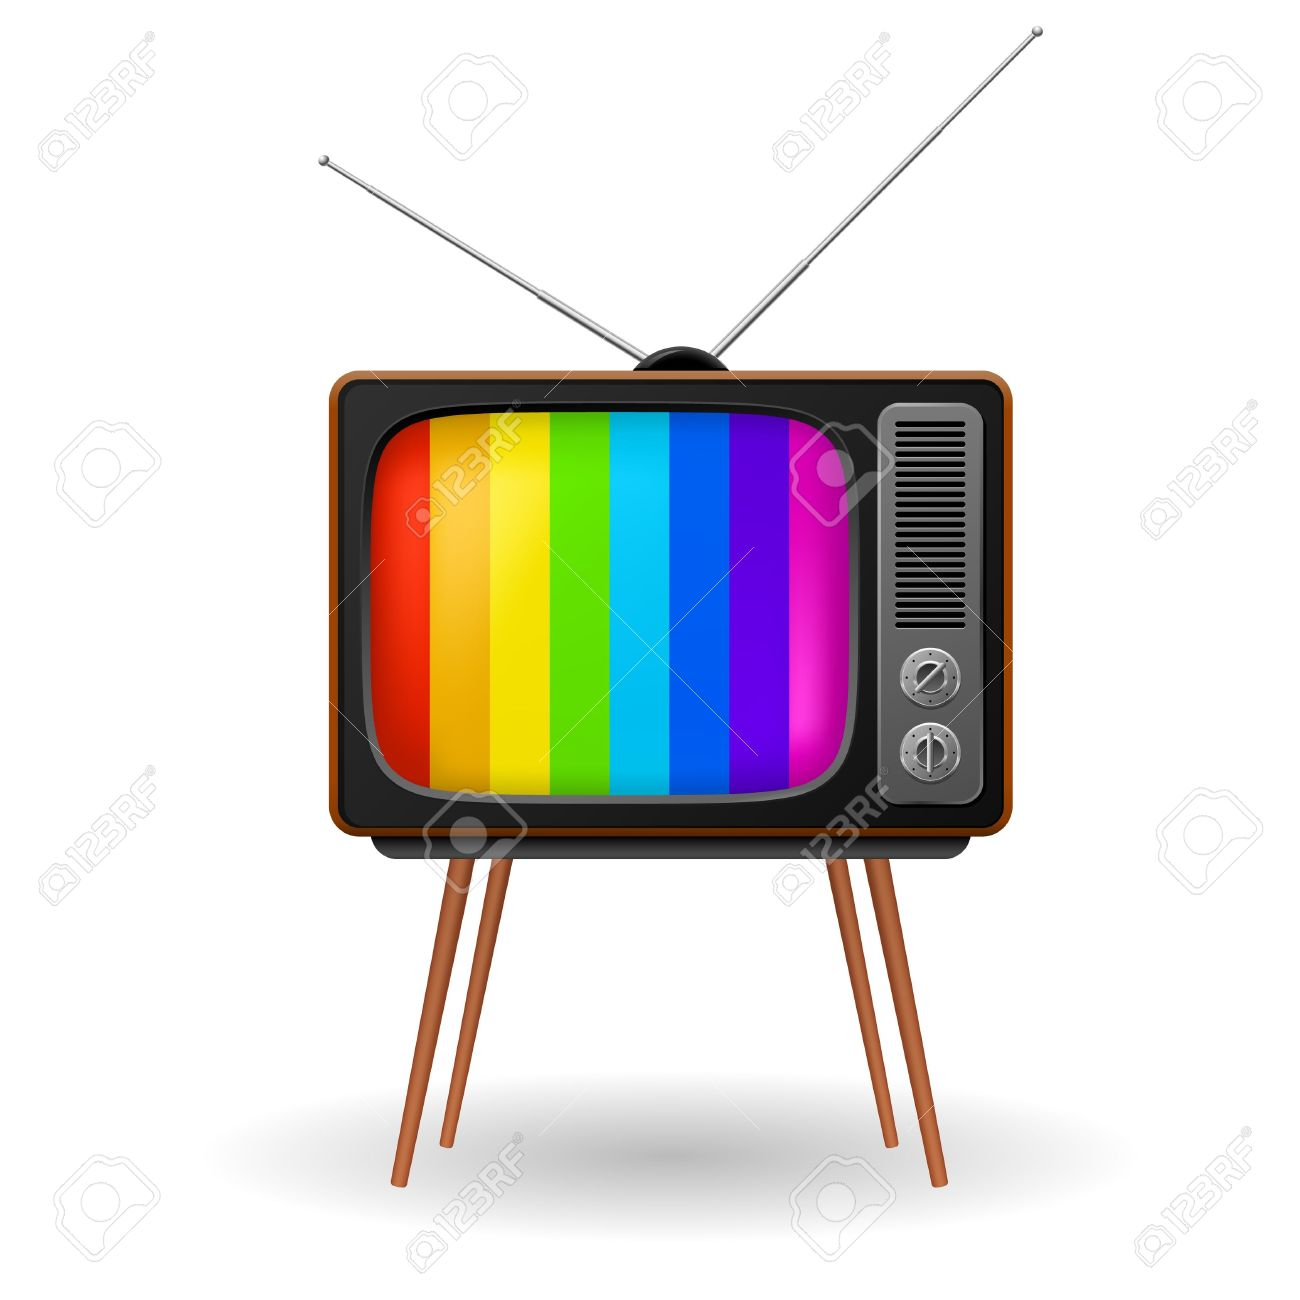 Retro TV With Color Frame. Illustration On White Background.